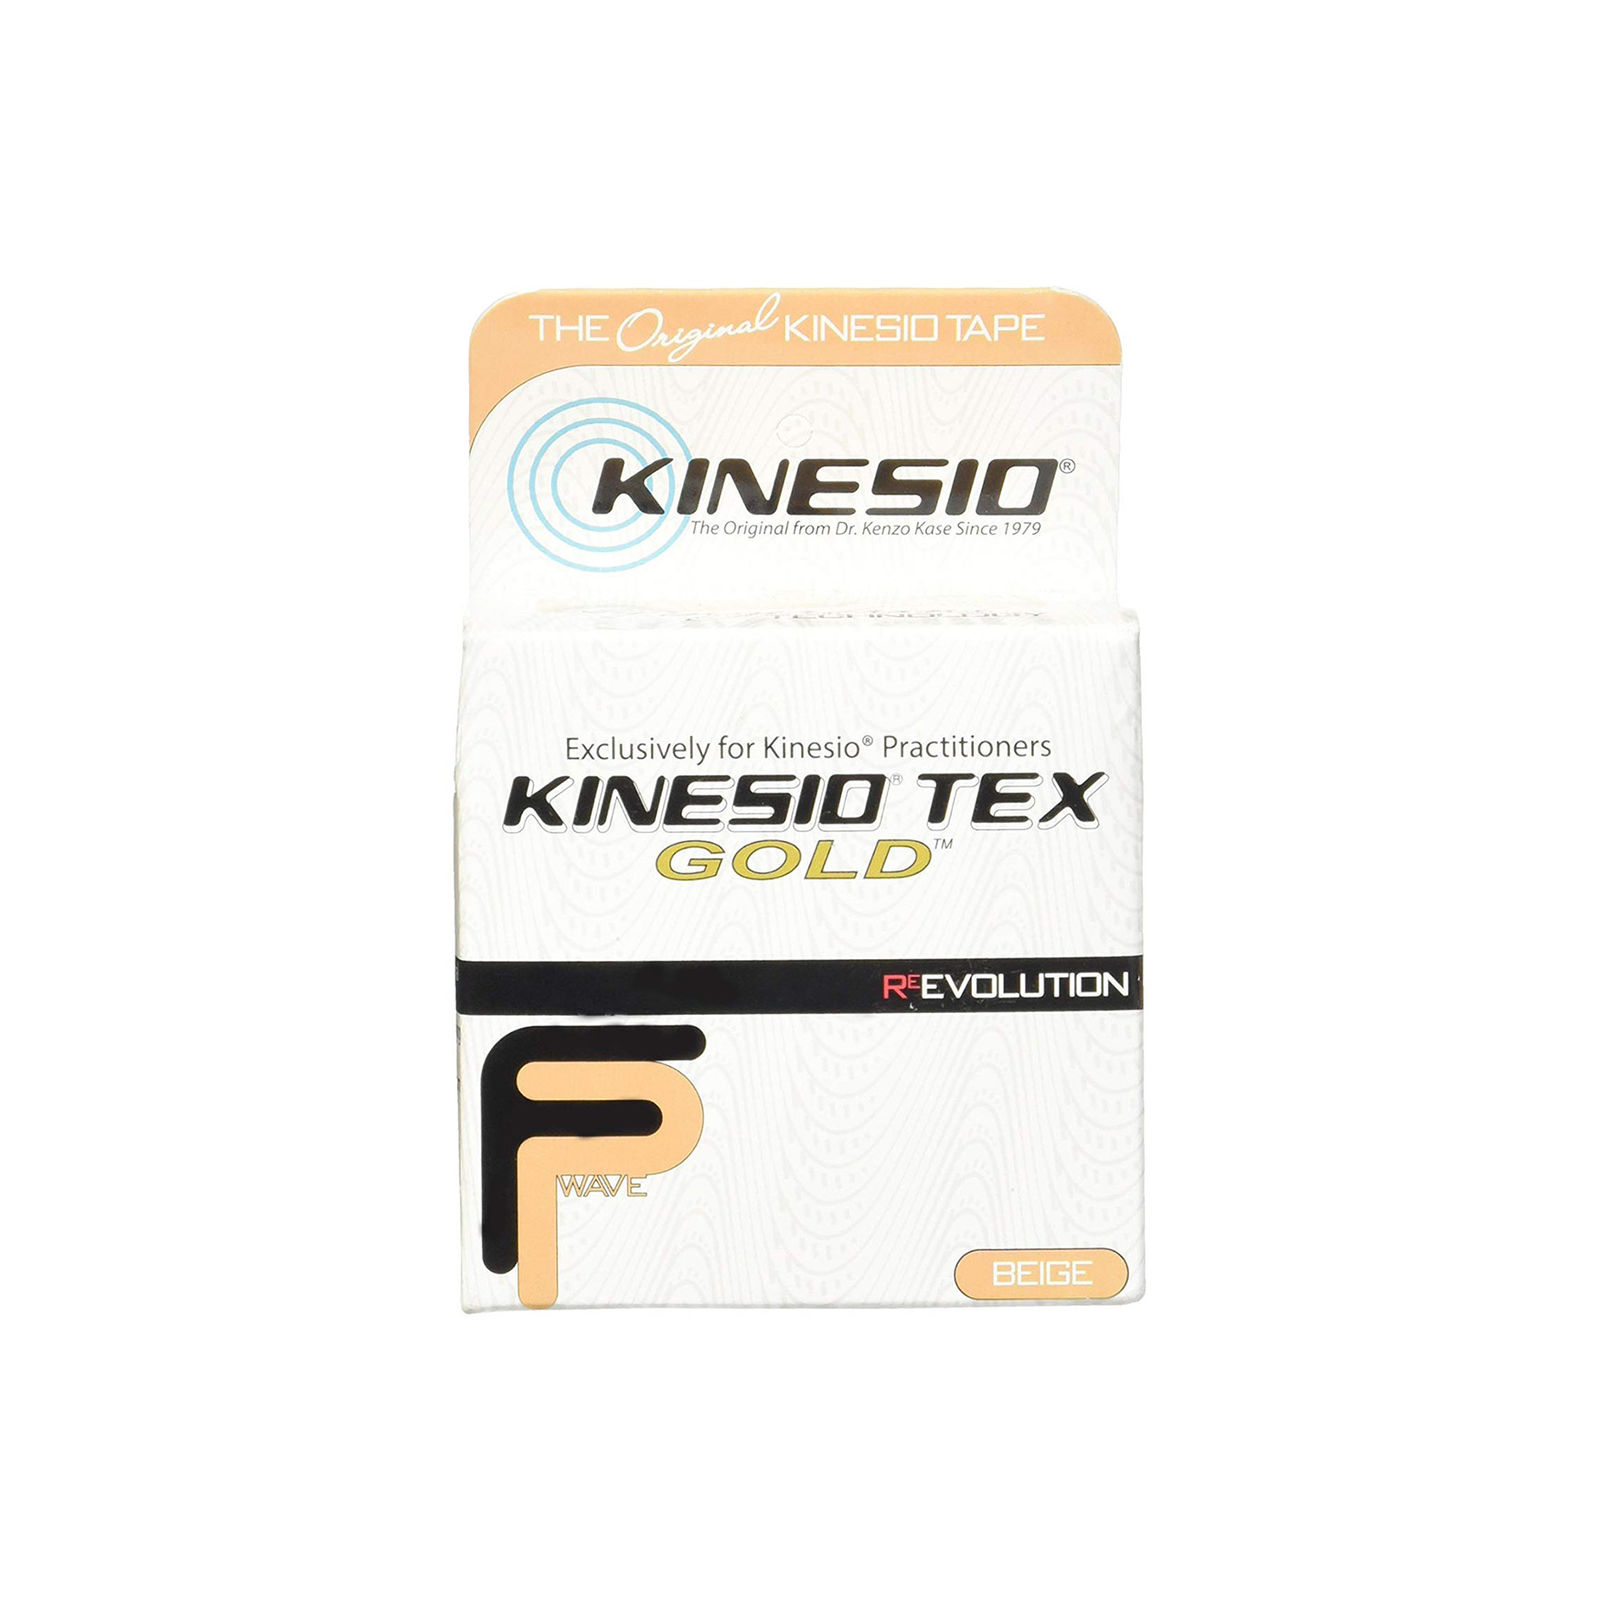 "Kinesio Tex Gold FP 2"" x 16.4"" Beige Single Roll"